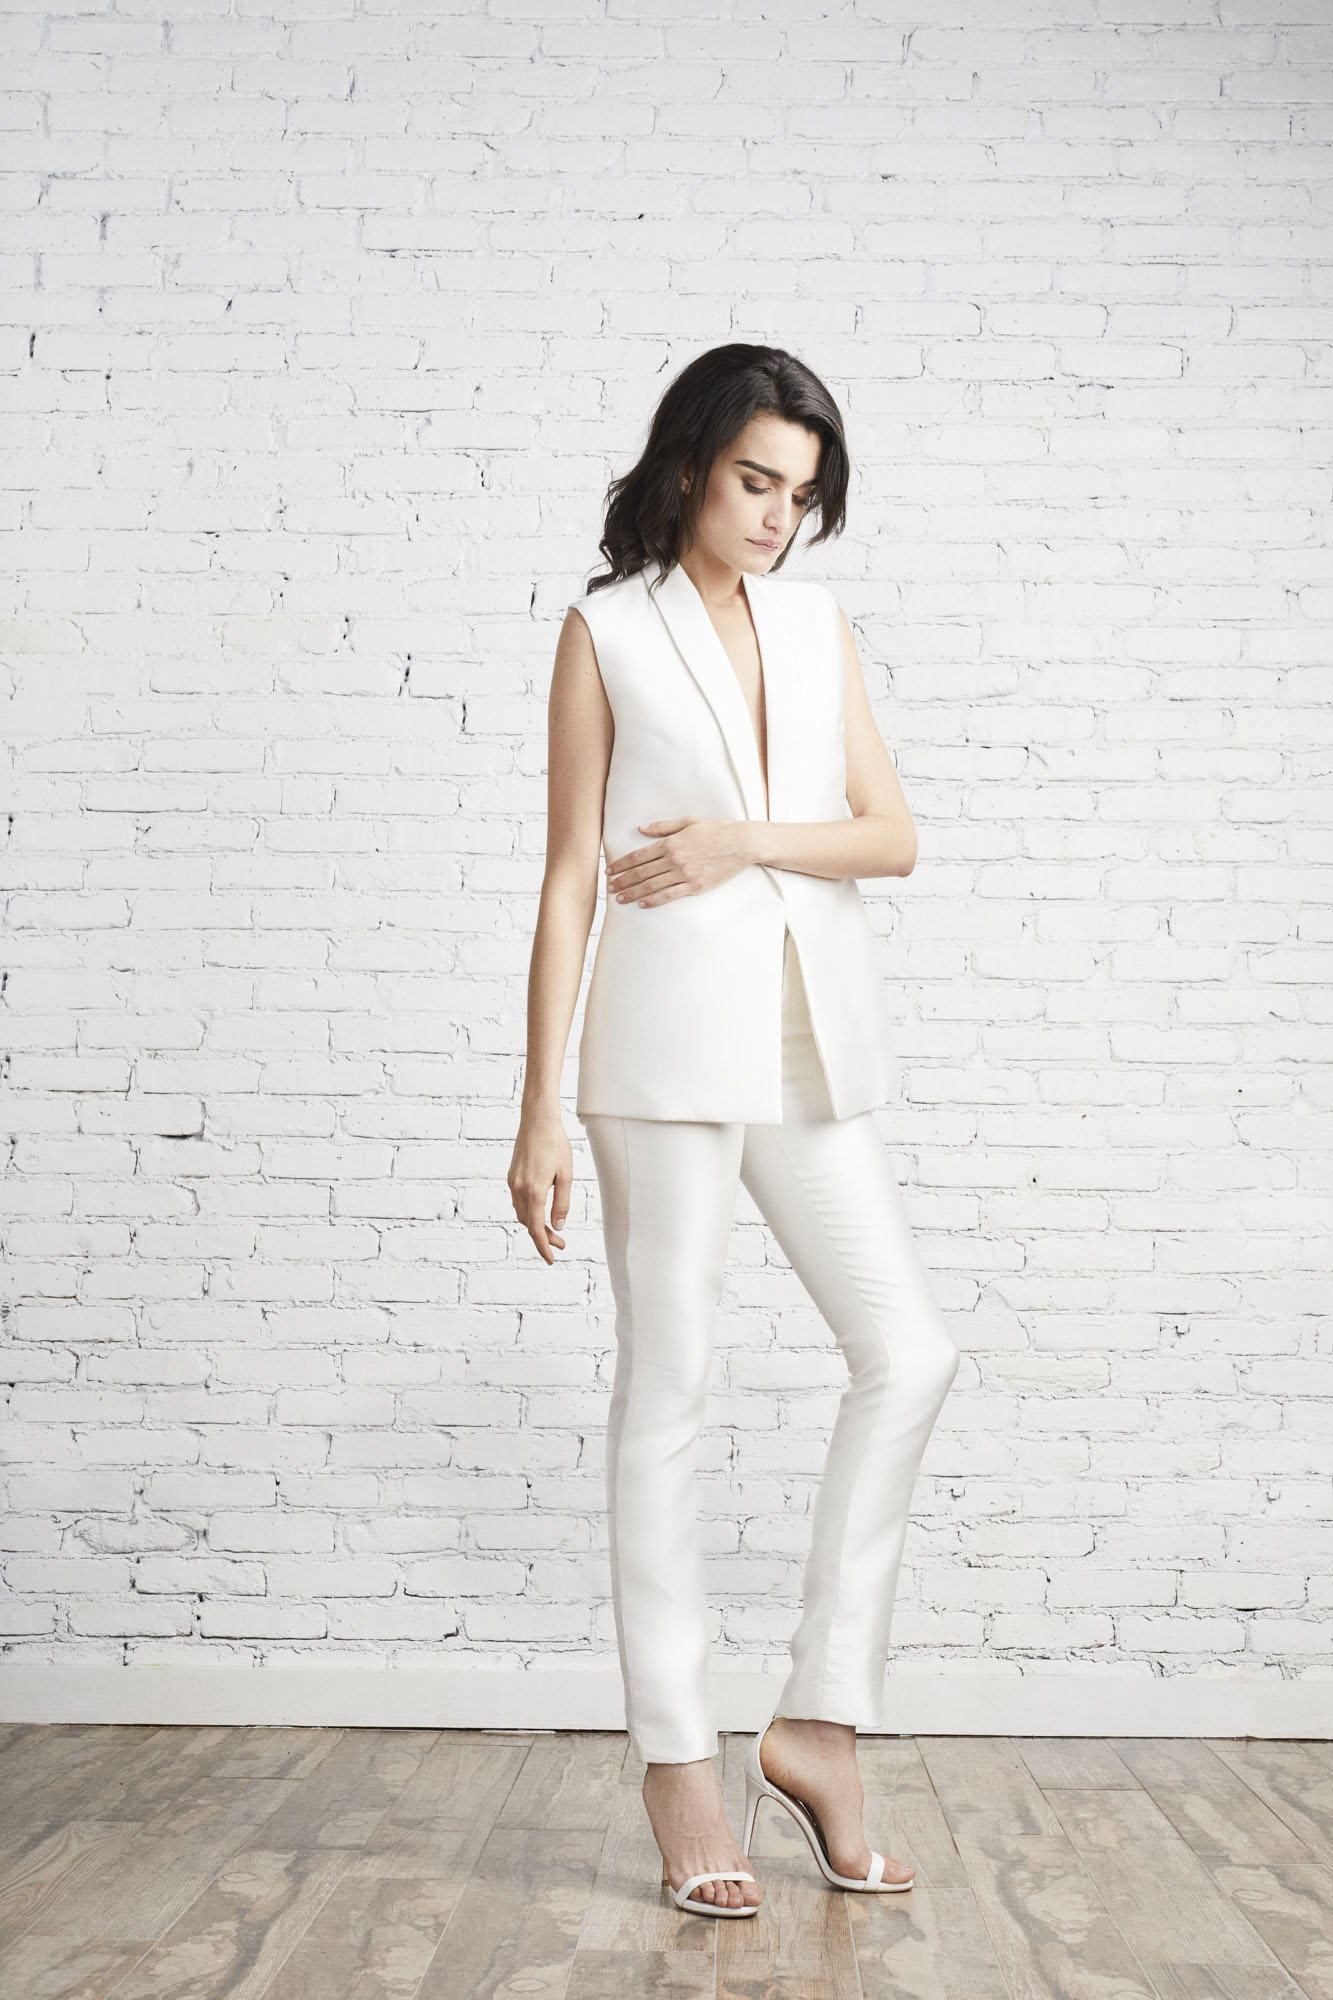 The Carmen sleeveless jacket and Julia cigarette pant create a sophisticated look perfect for the power bride.